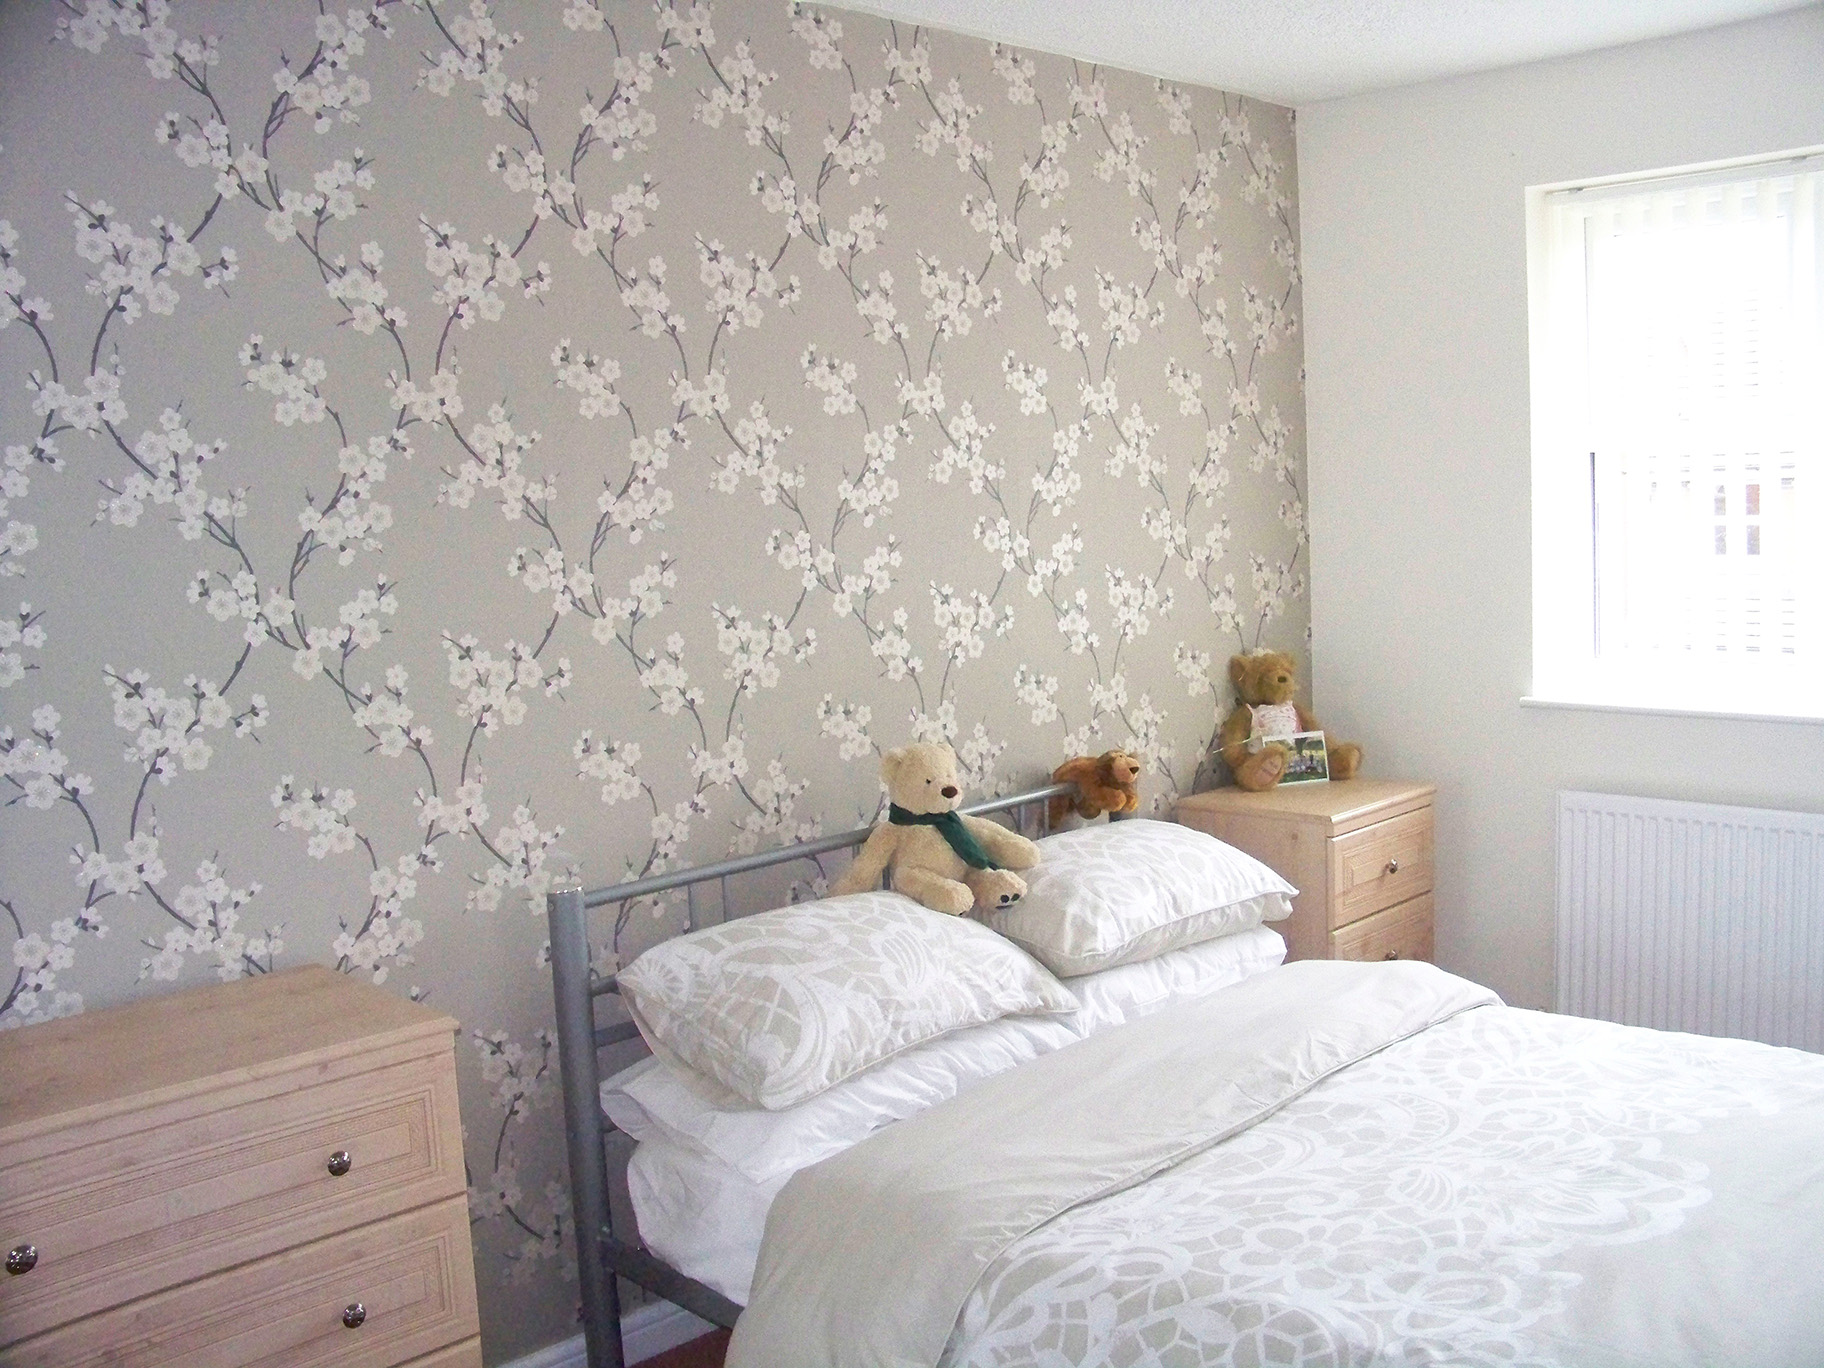 Wallpapering services pioneer decorators for Pretty wallpaper for walls